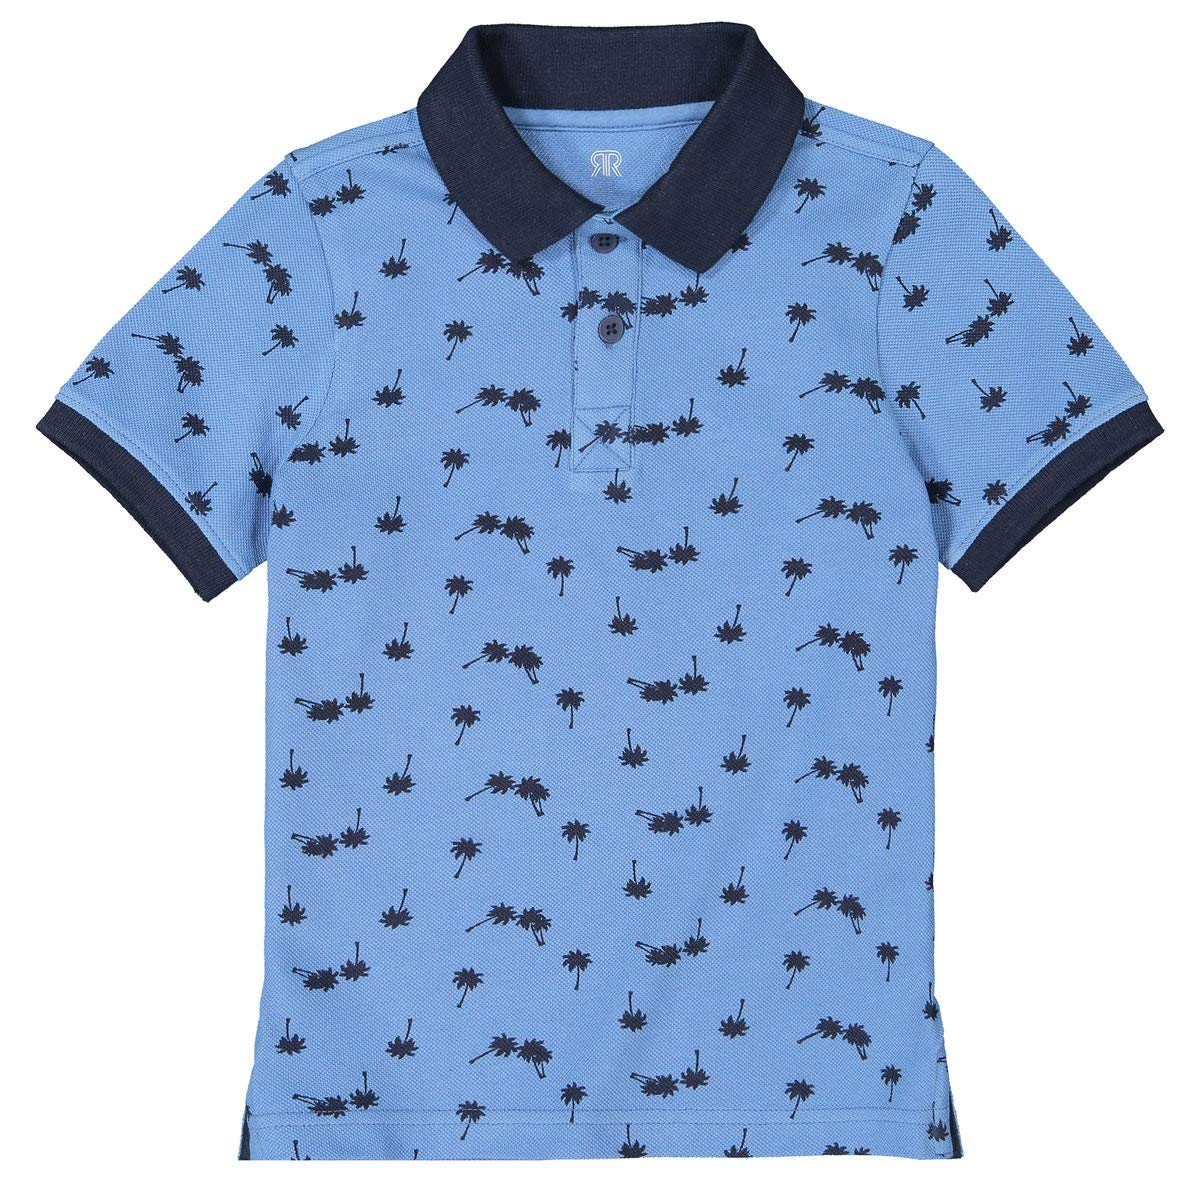 La Redoute Collections Palm Print Short-Sleeved Polo Shirt, 3-12 Years Blue Size 3 Years (94 cm)